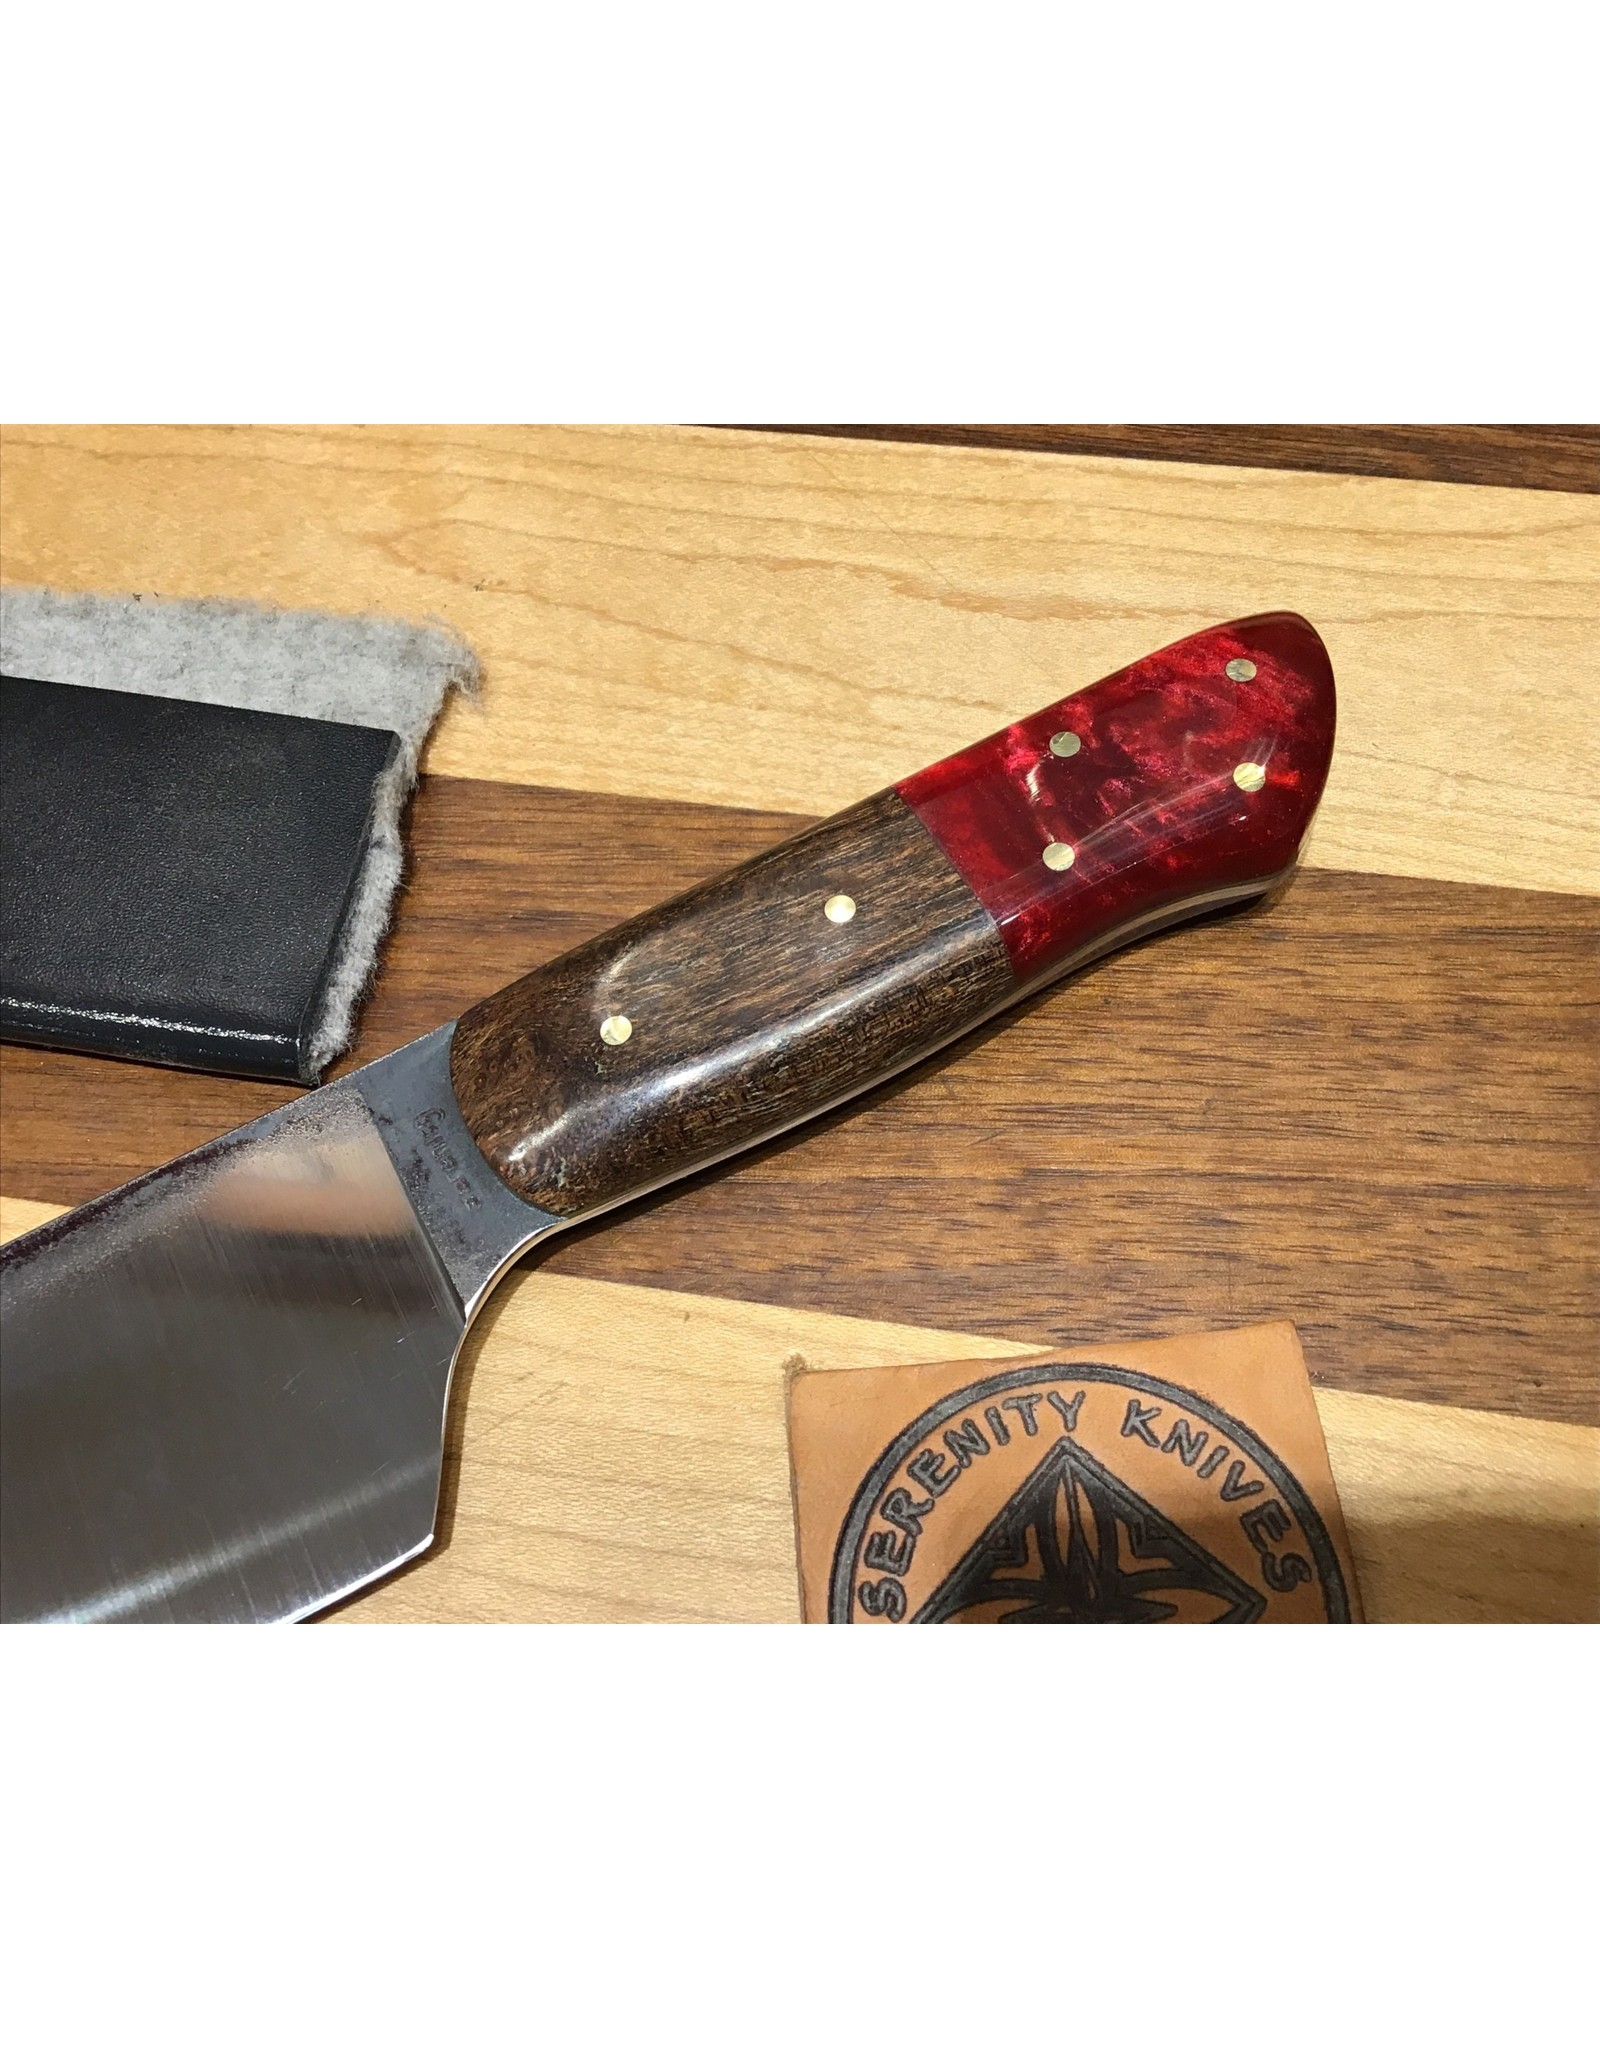 Serenity M-style Gyuto in CPM154 with a Mesquite and Red Resin Handle